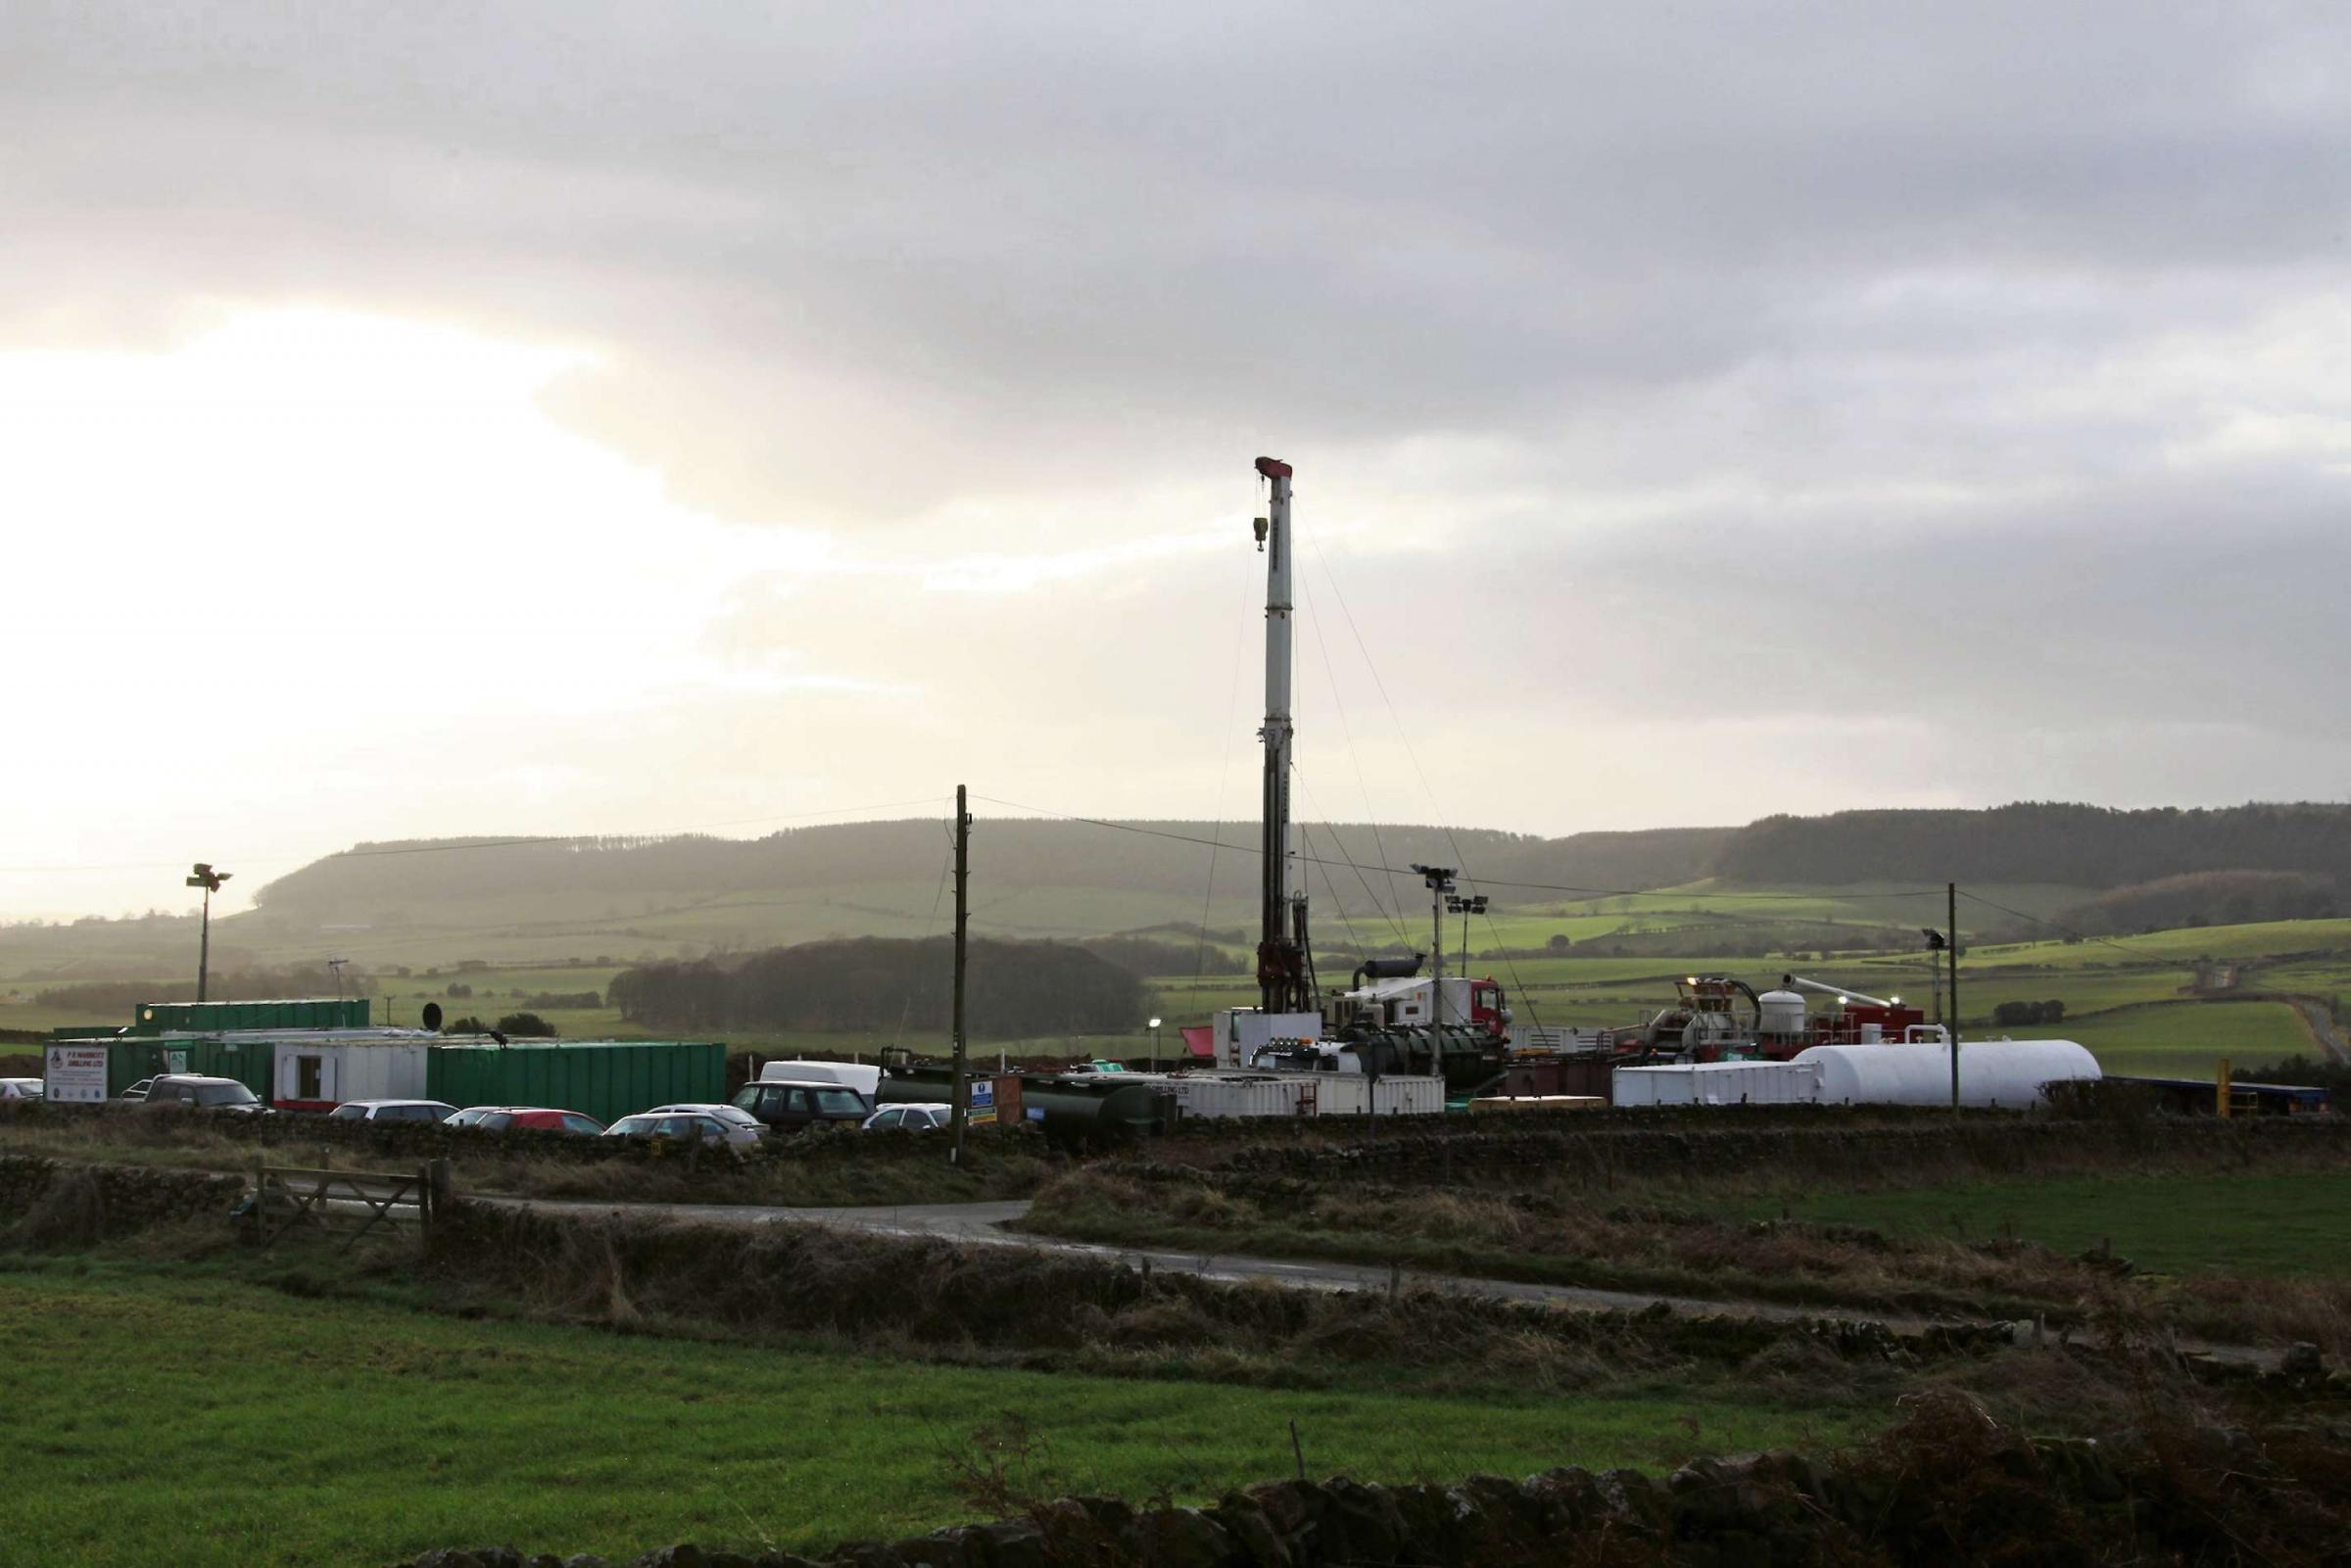 UNDERGROUND PROJECT: A York Potash drilling rig to explore the depth, quality and thickness of the polyhalite underneath the North York Moors